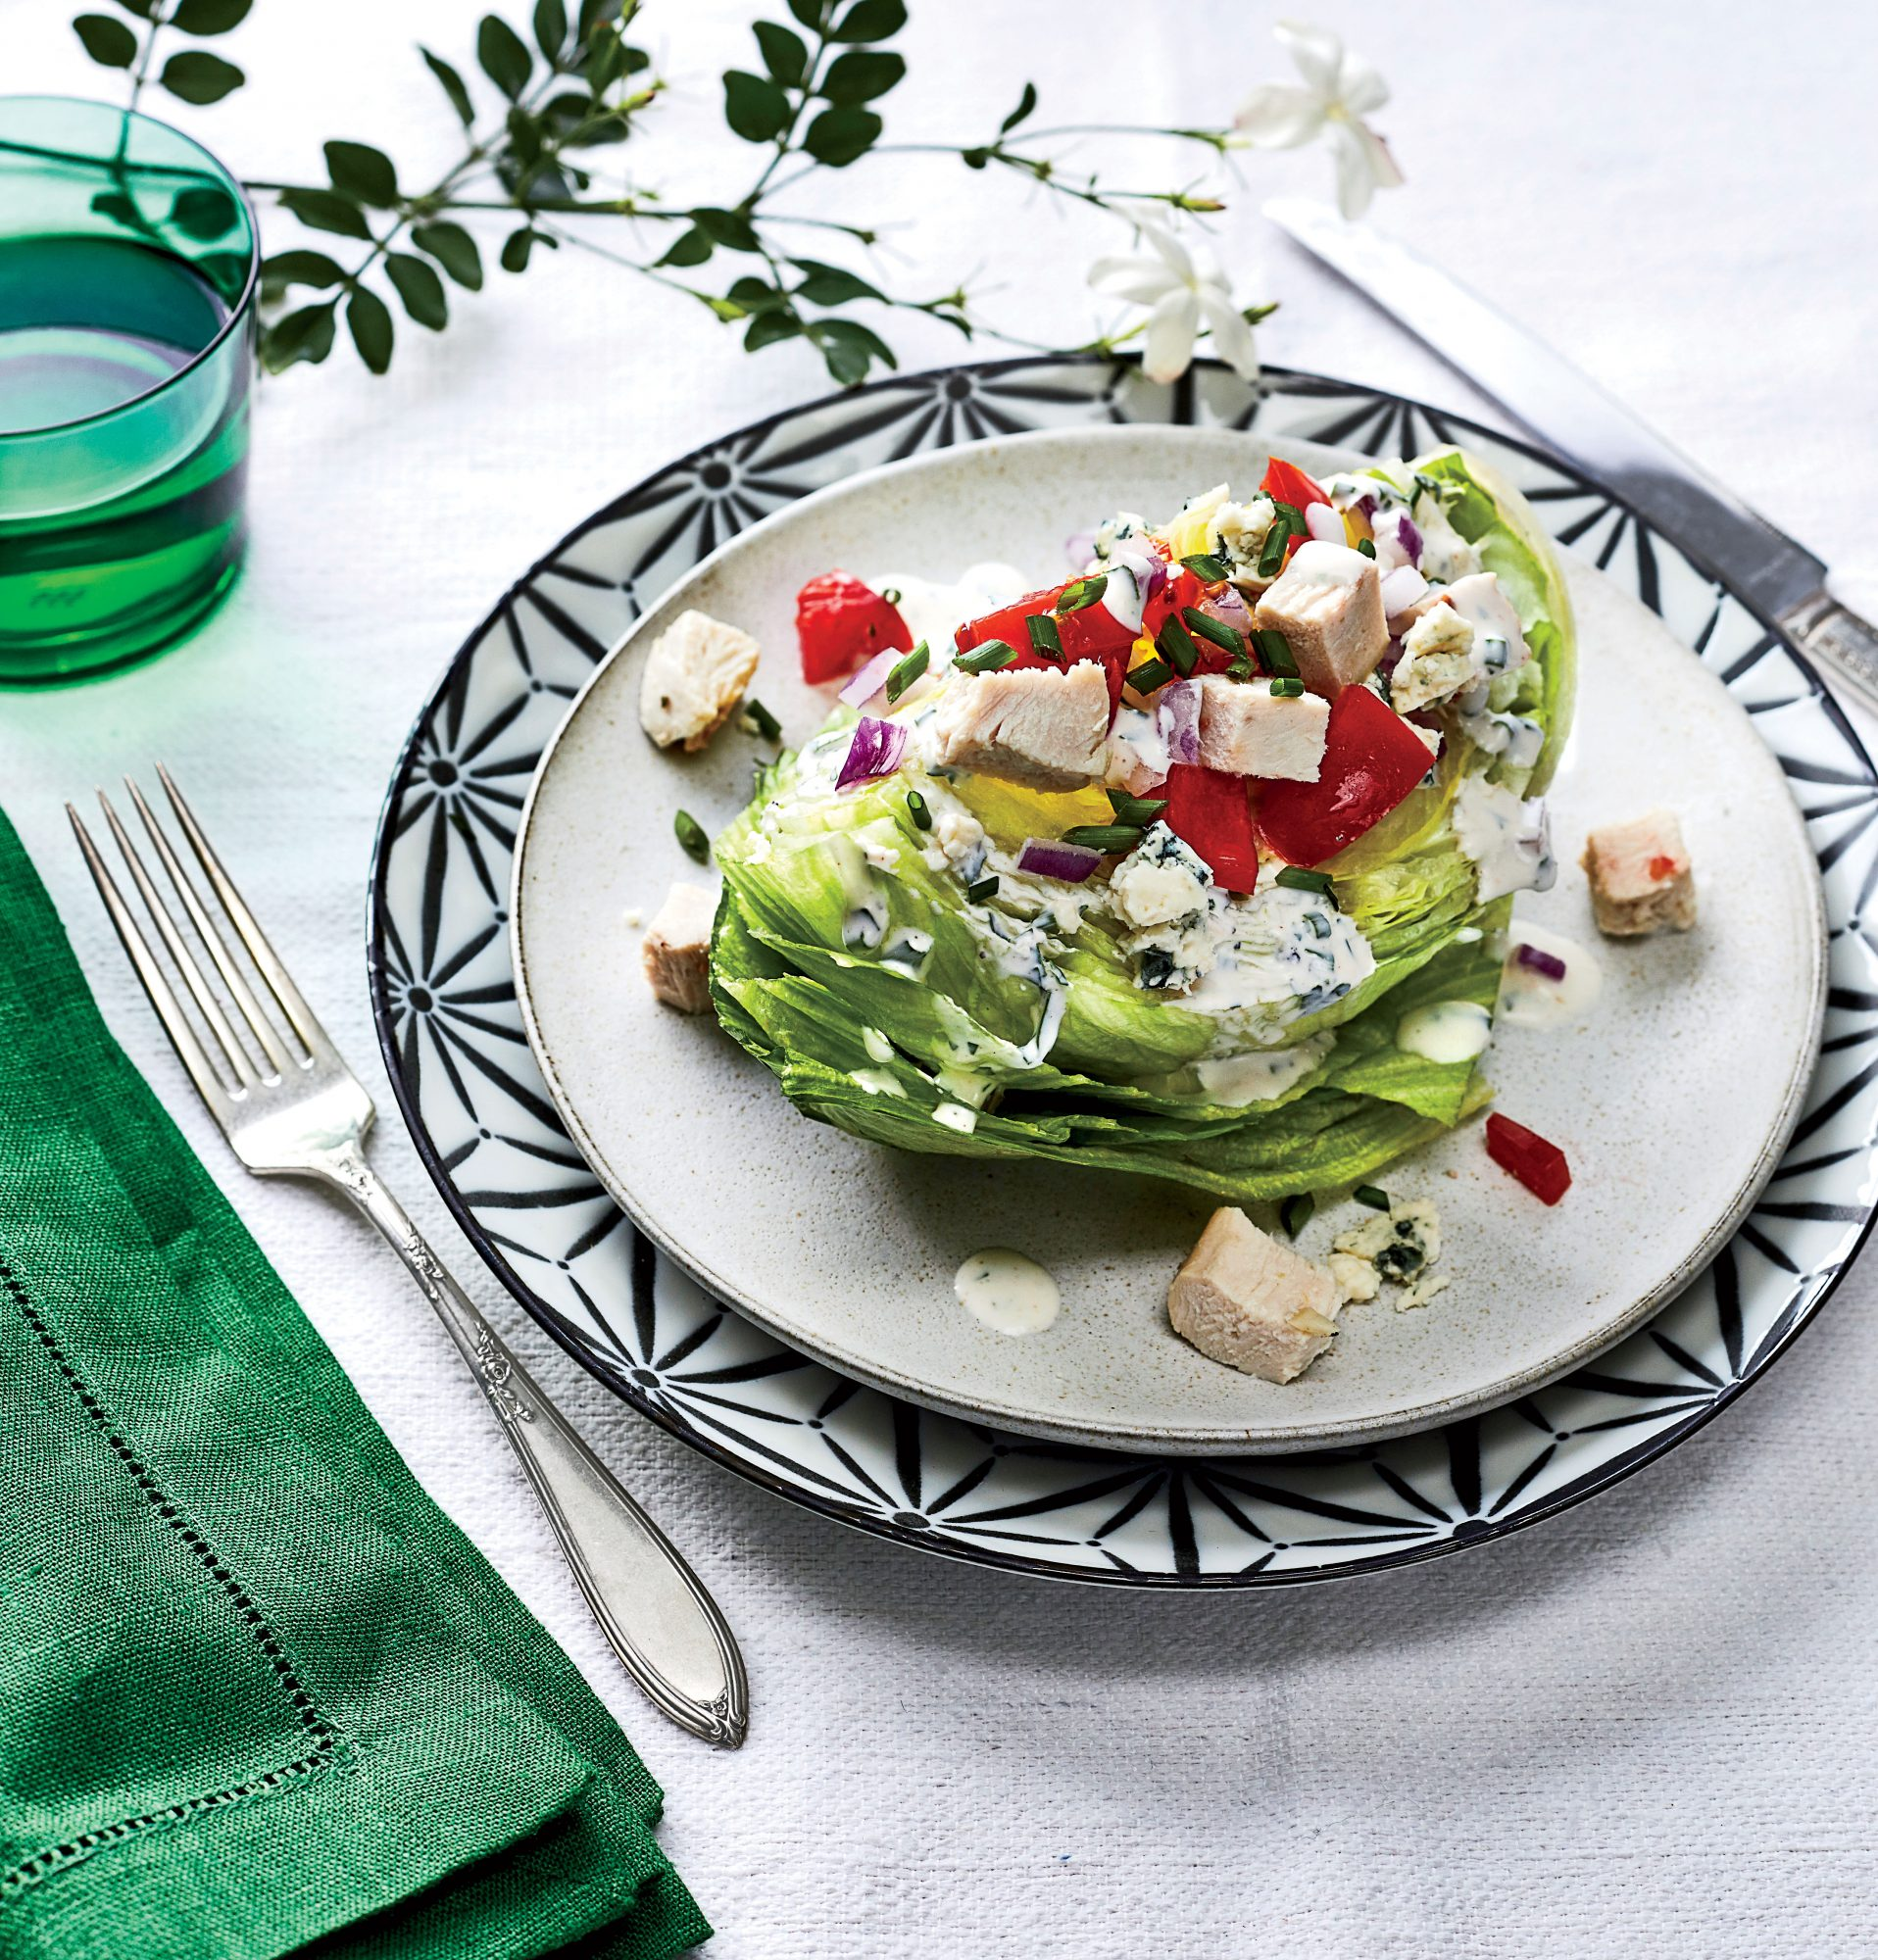 Wedge Salad with Turkey and Blue Cheese-Buttermilk Dressing